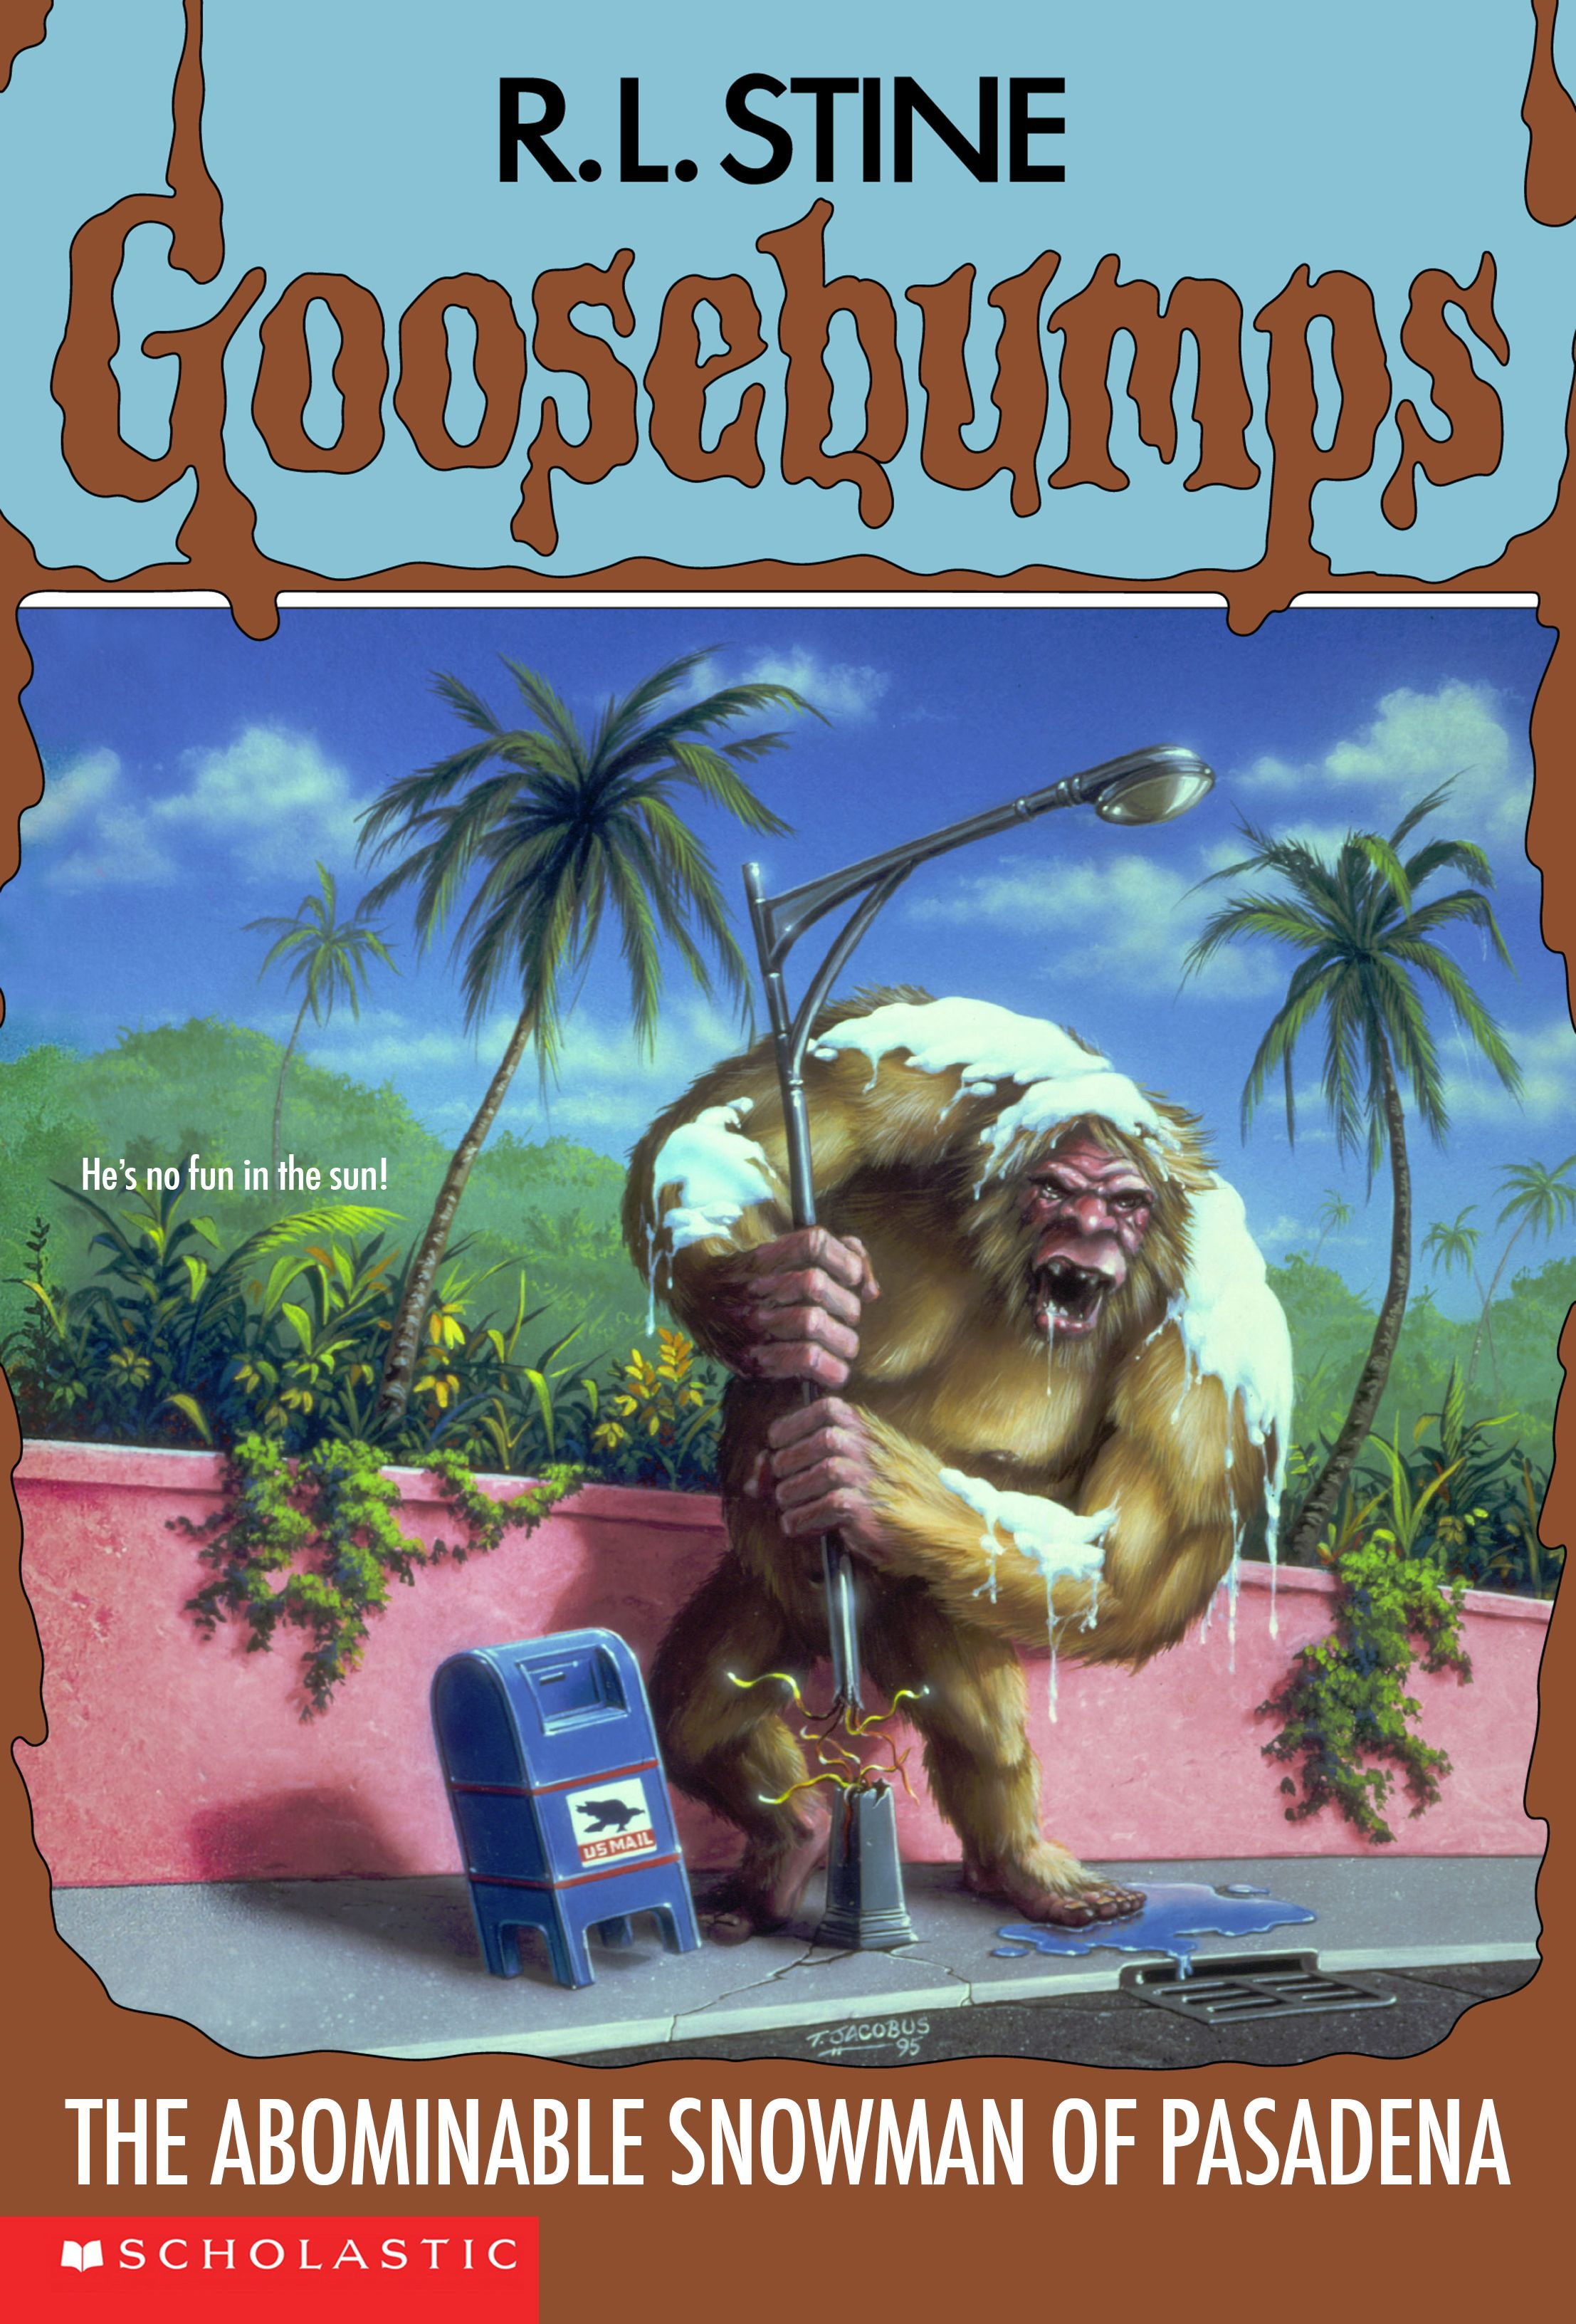 Goosebumps Coloring Pages Super Coloring Pages Coloring Pages Goosebumps